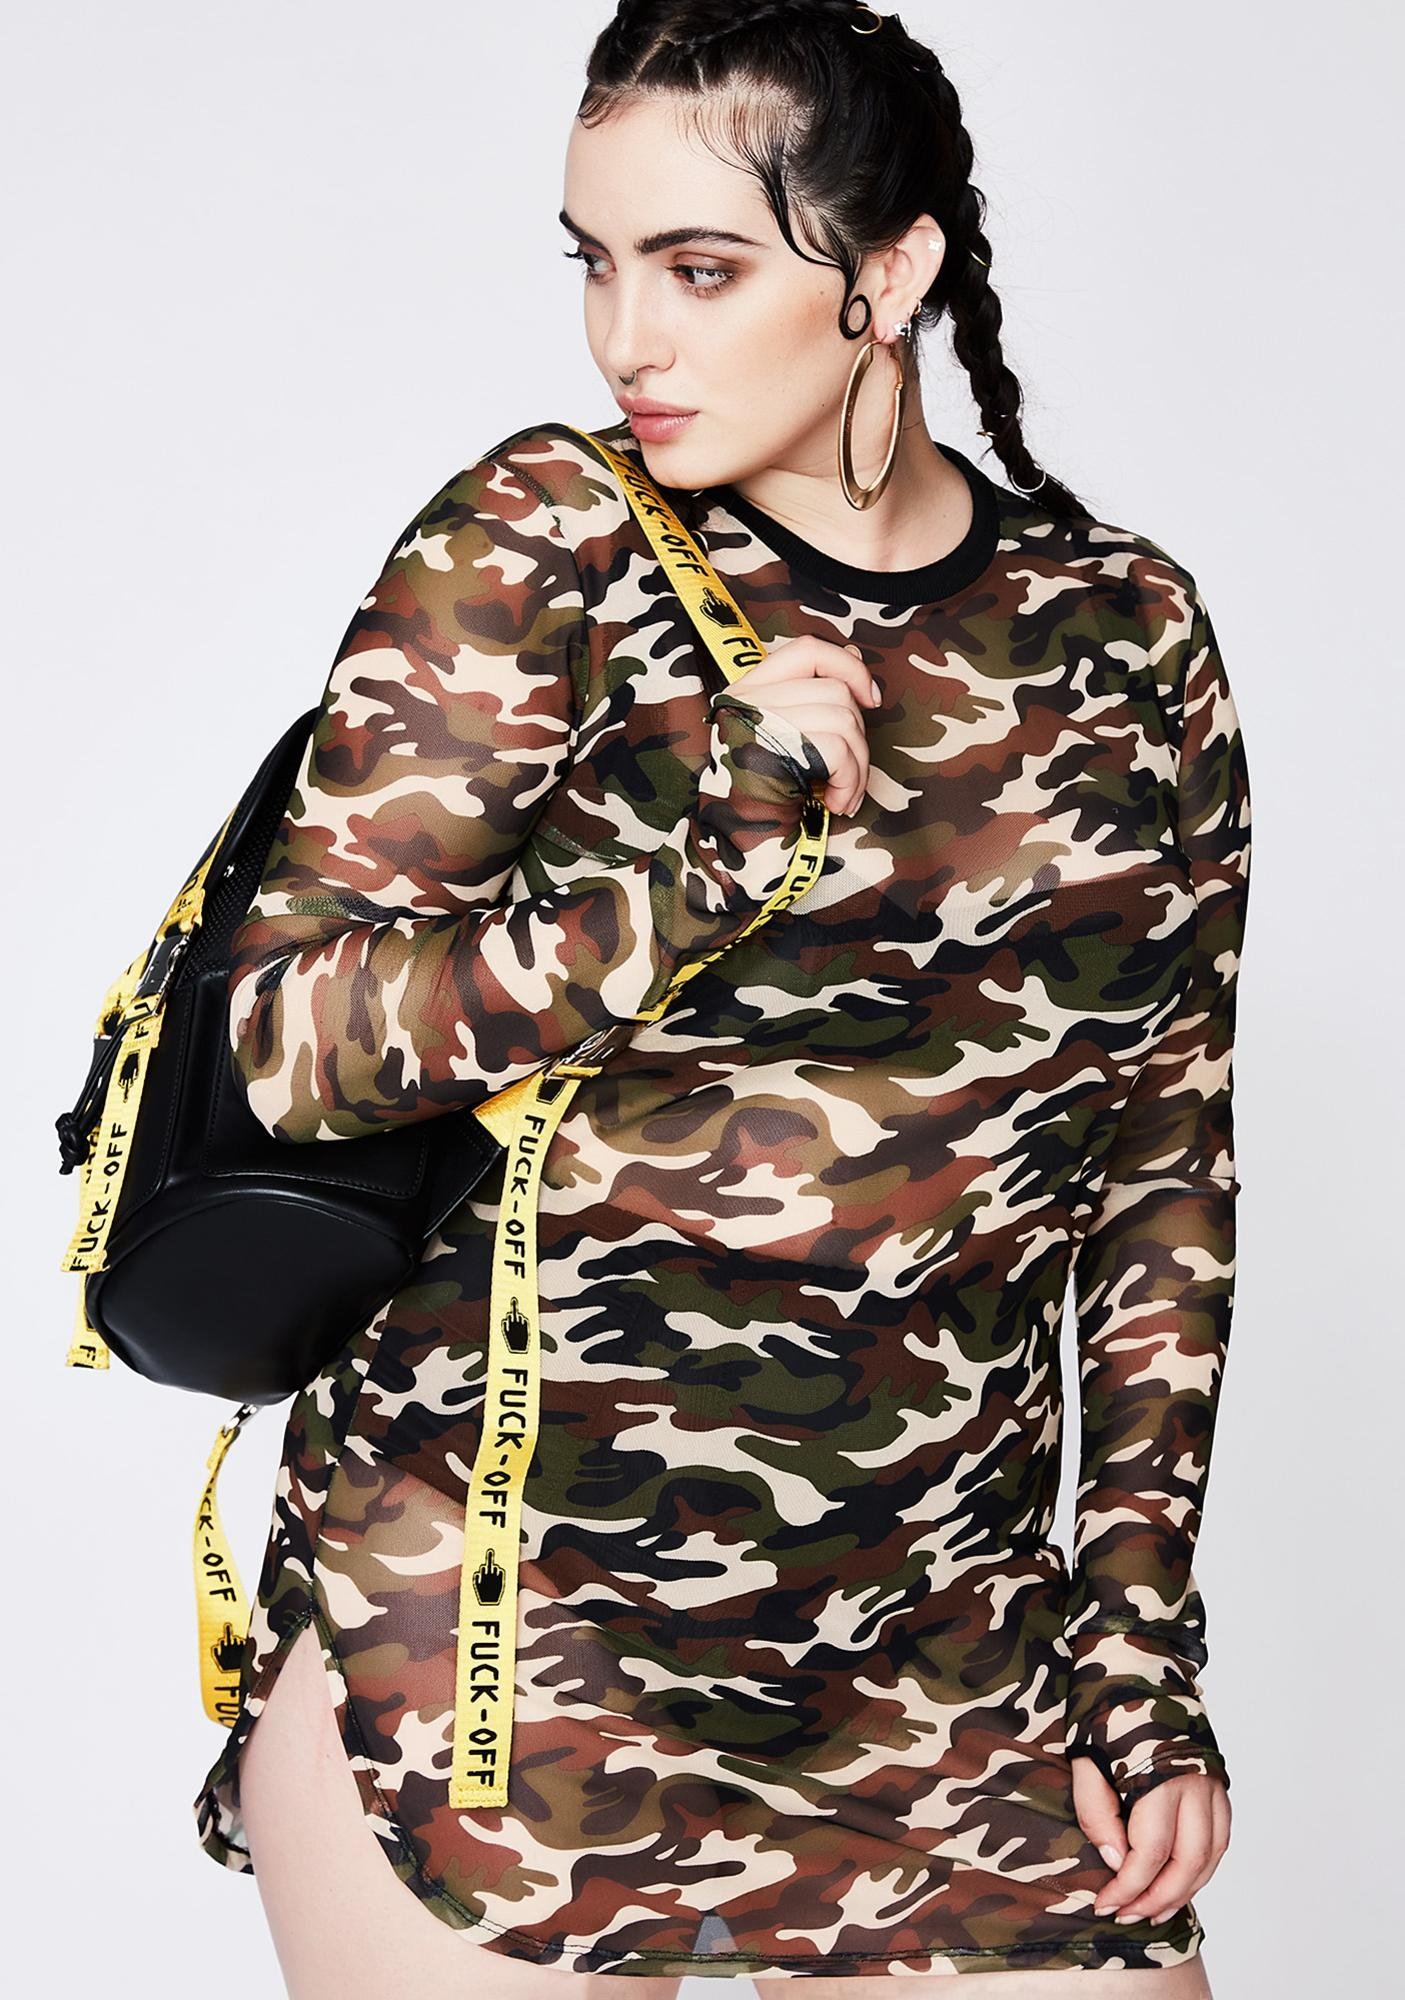 Poster Grl On The Battlefield Camo Dress